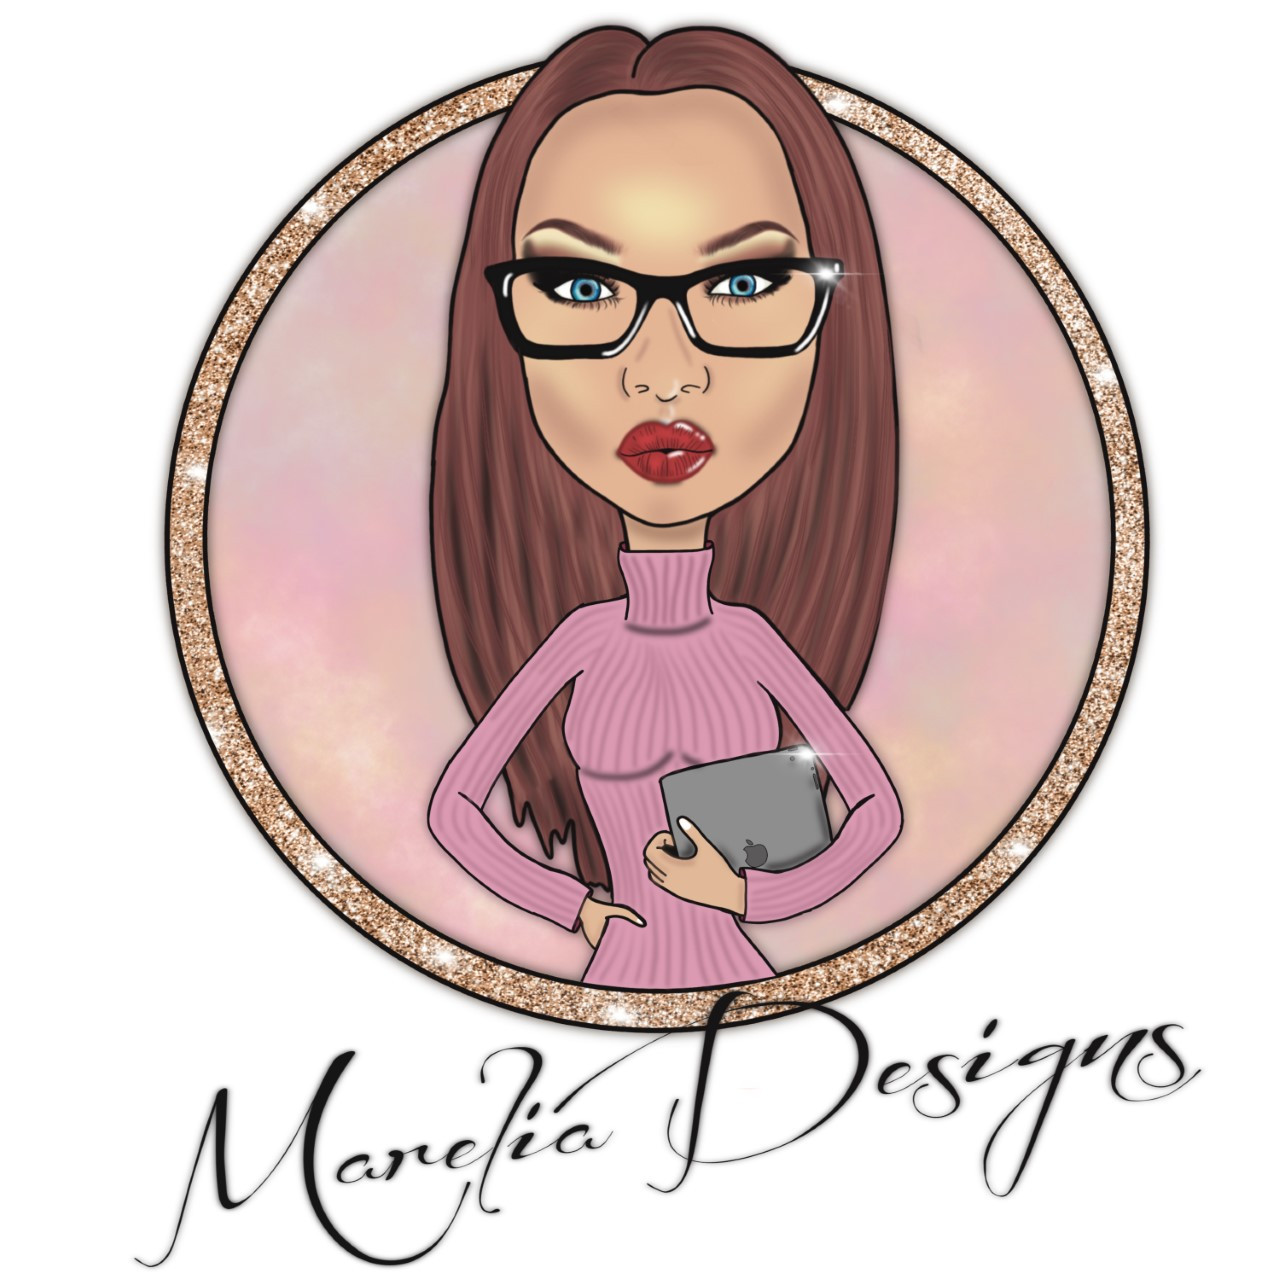 Marelia Designs's profile picture